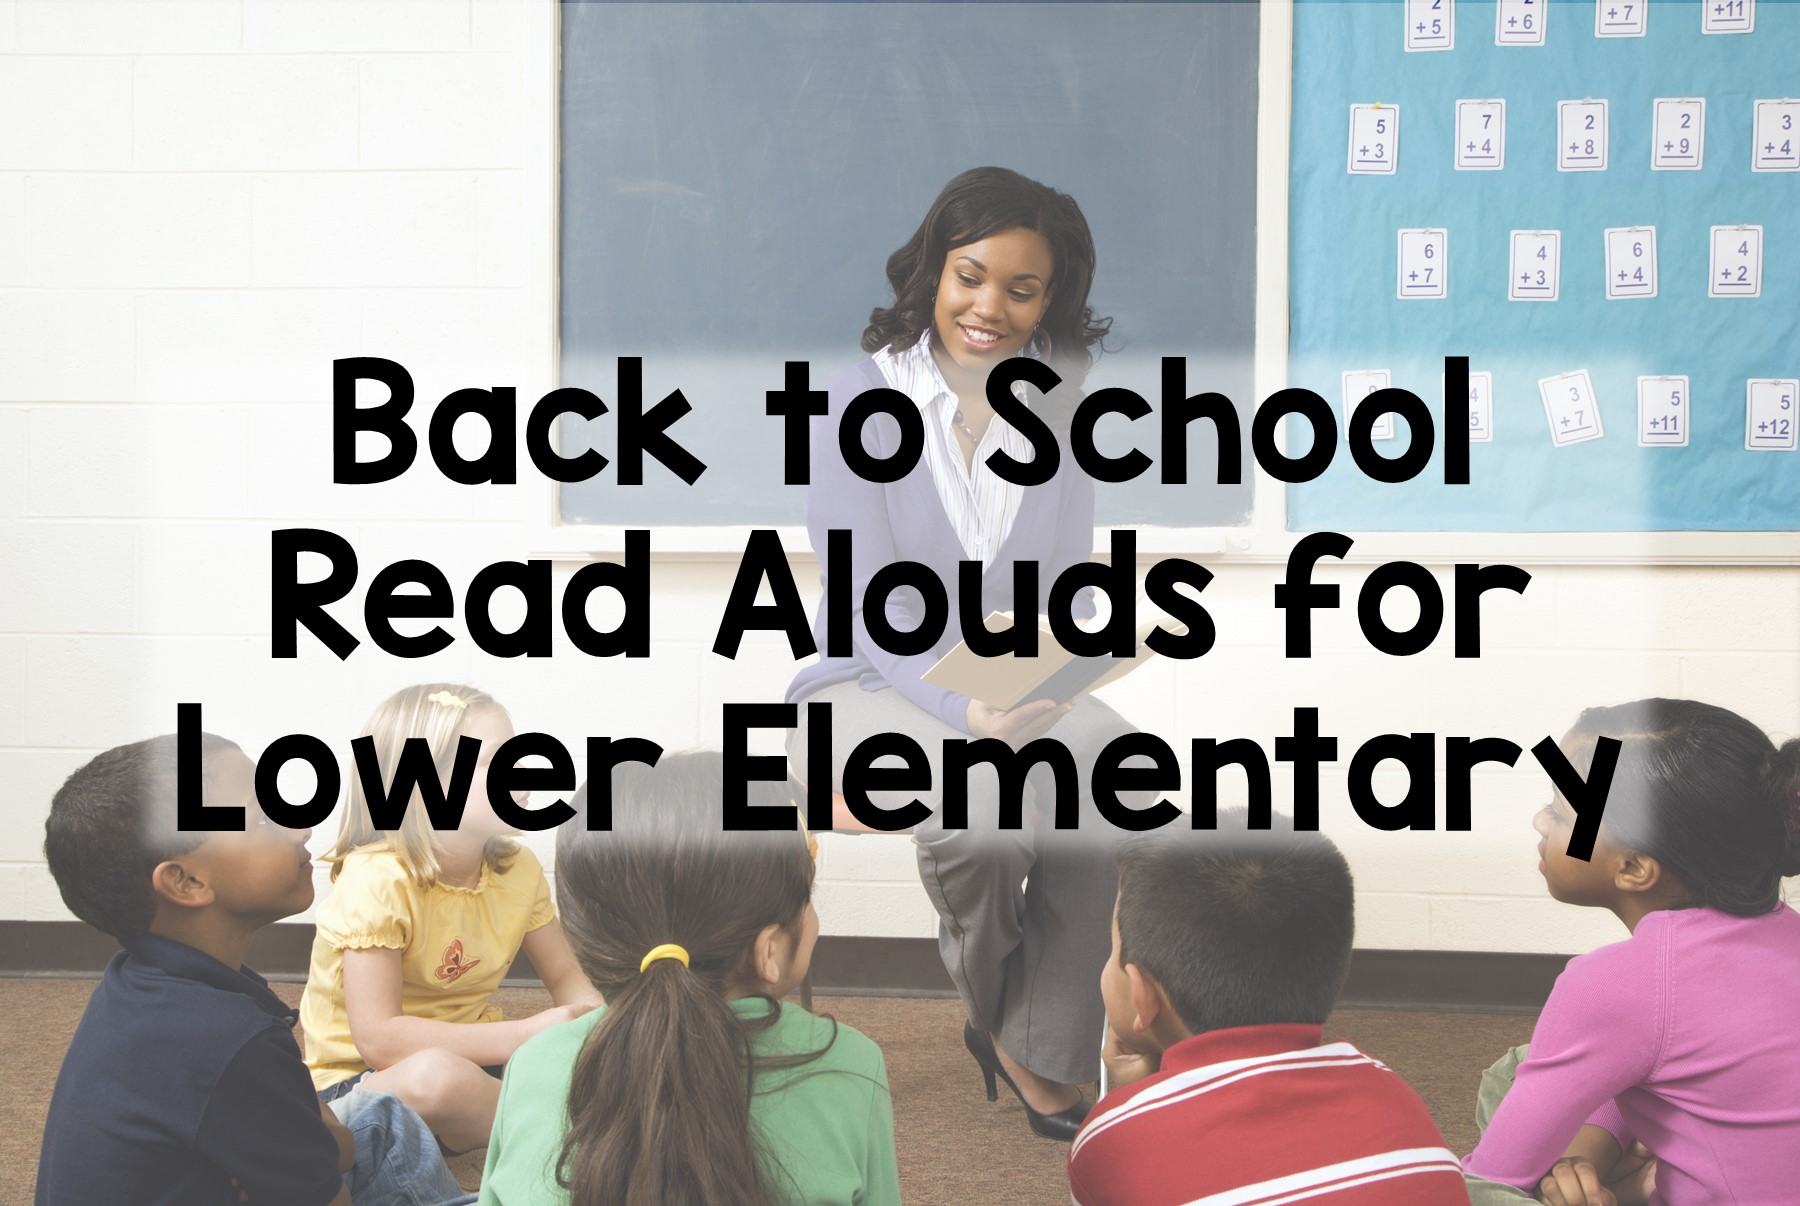 Back to School Read Aloud Suggestions and Activities for K-2